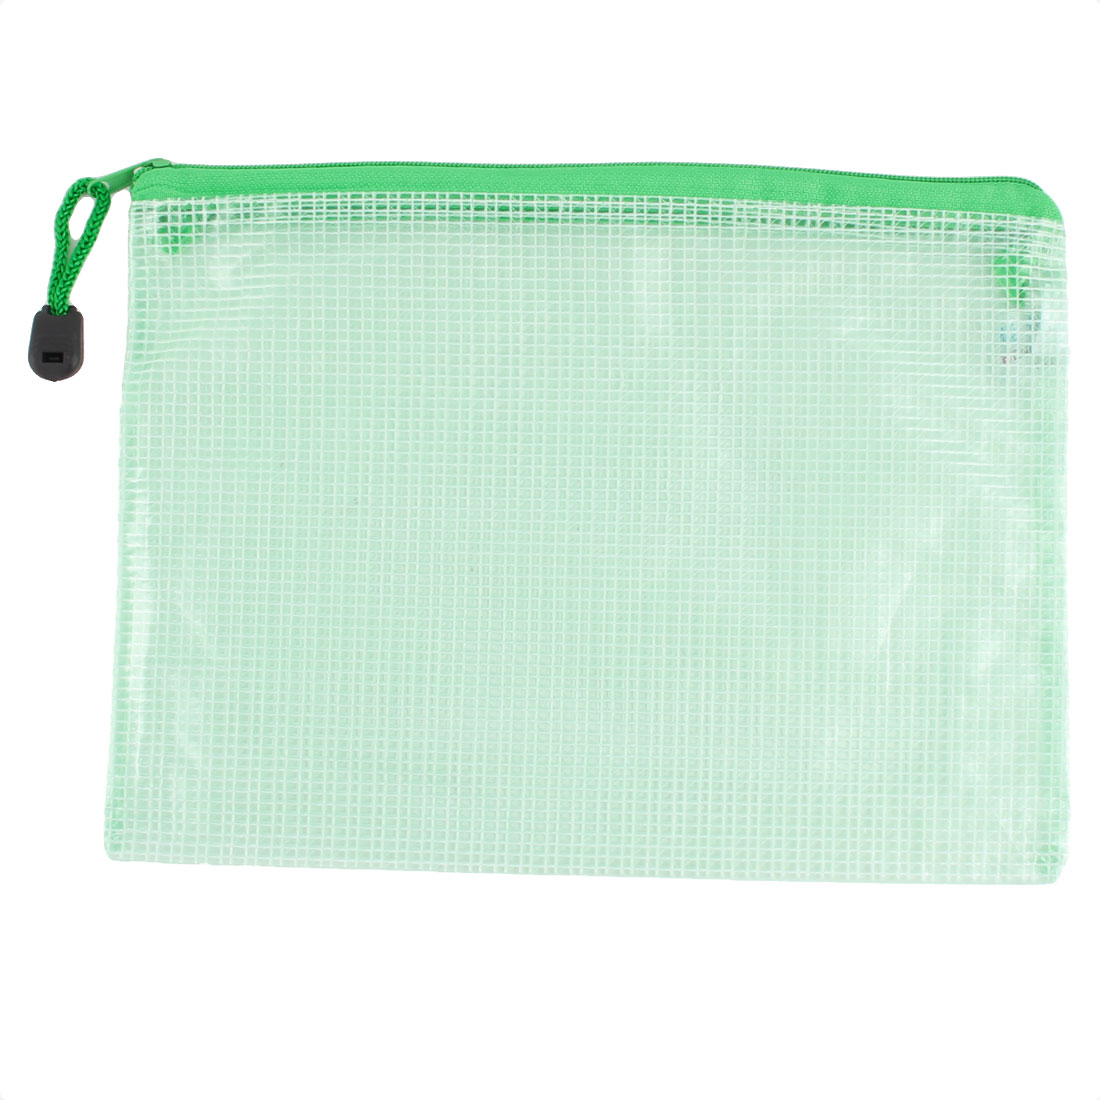 School Office Document Pen Pencil File Folder Holder Bag Green 24 x 17cm